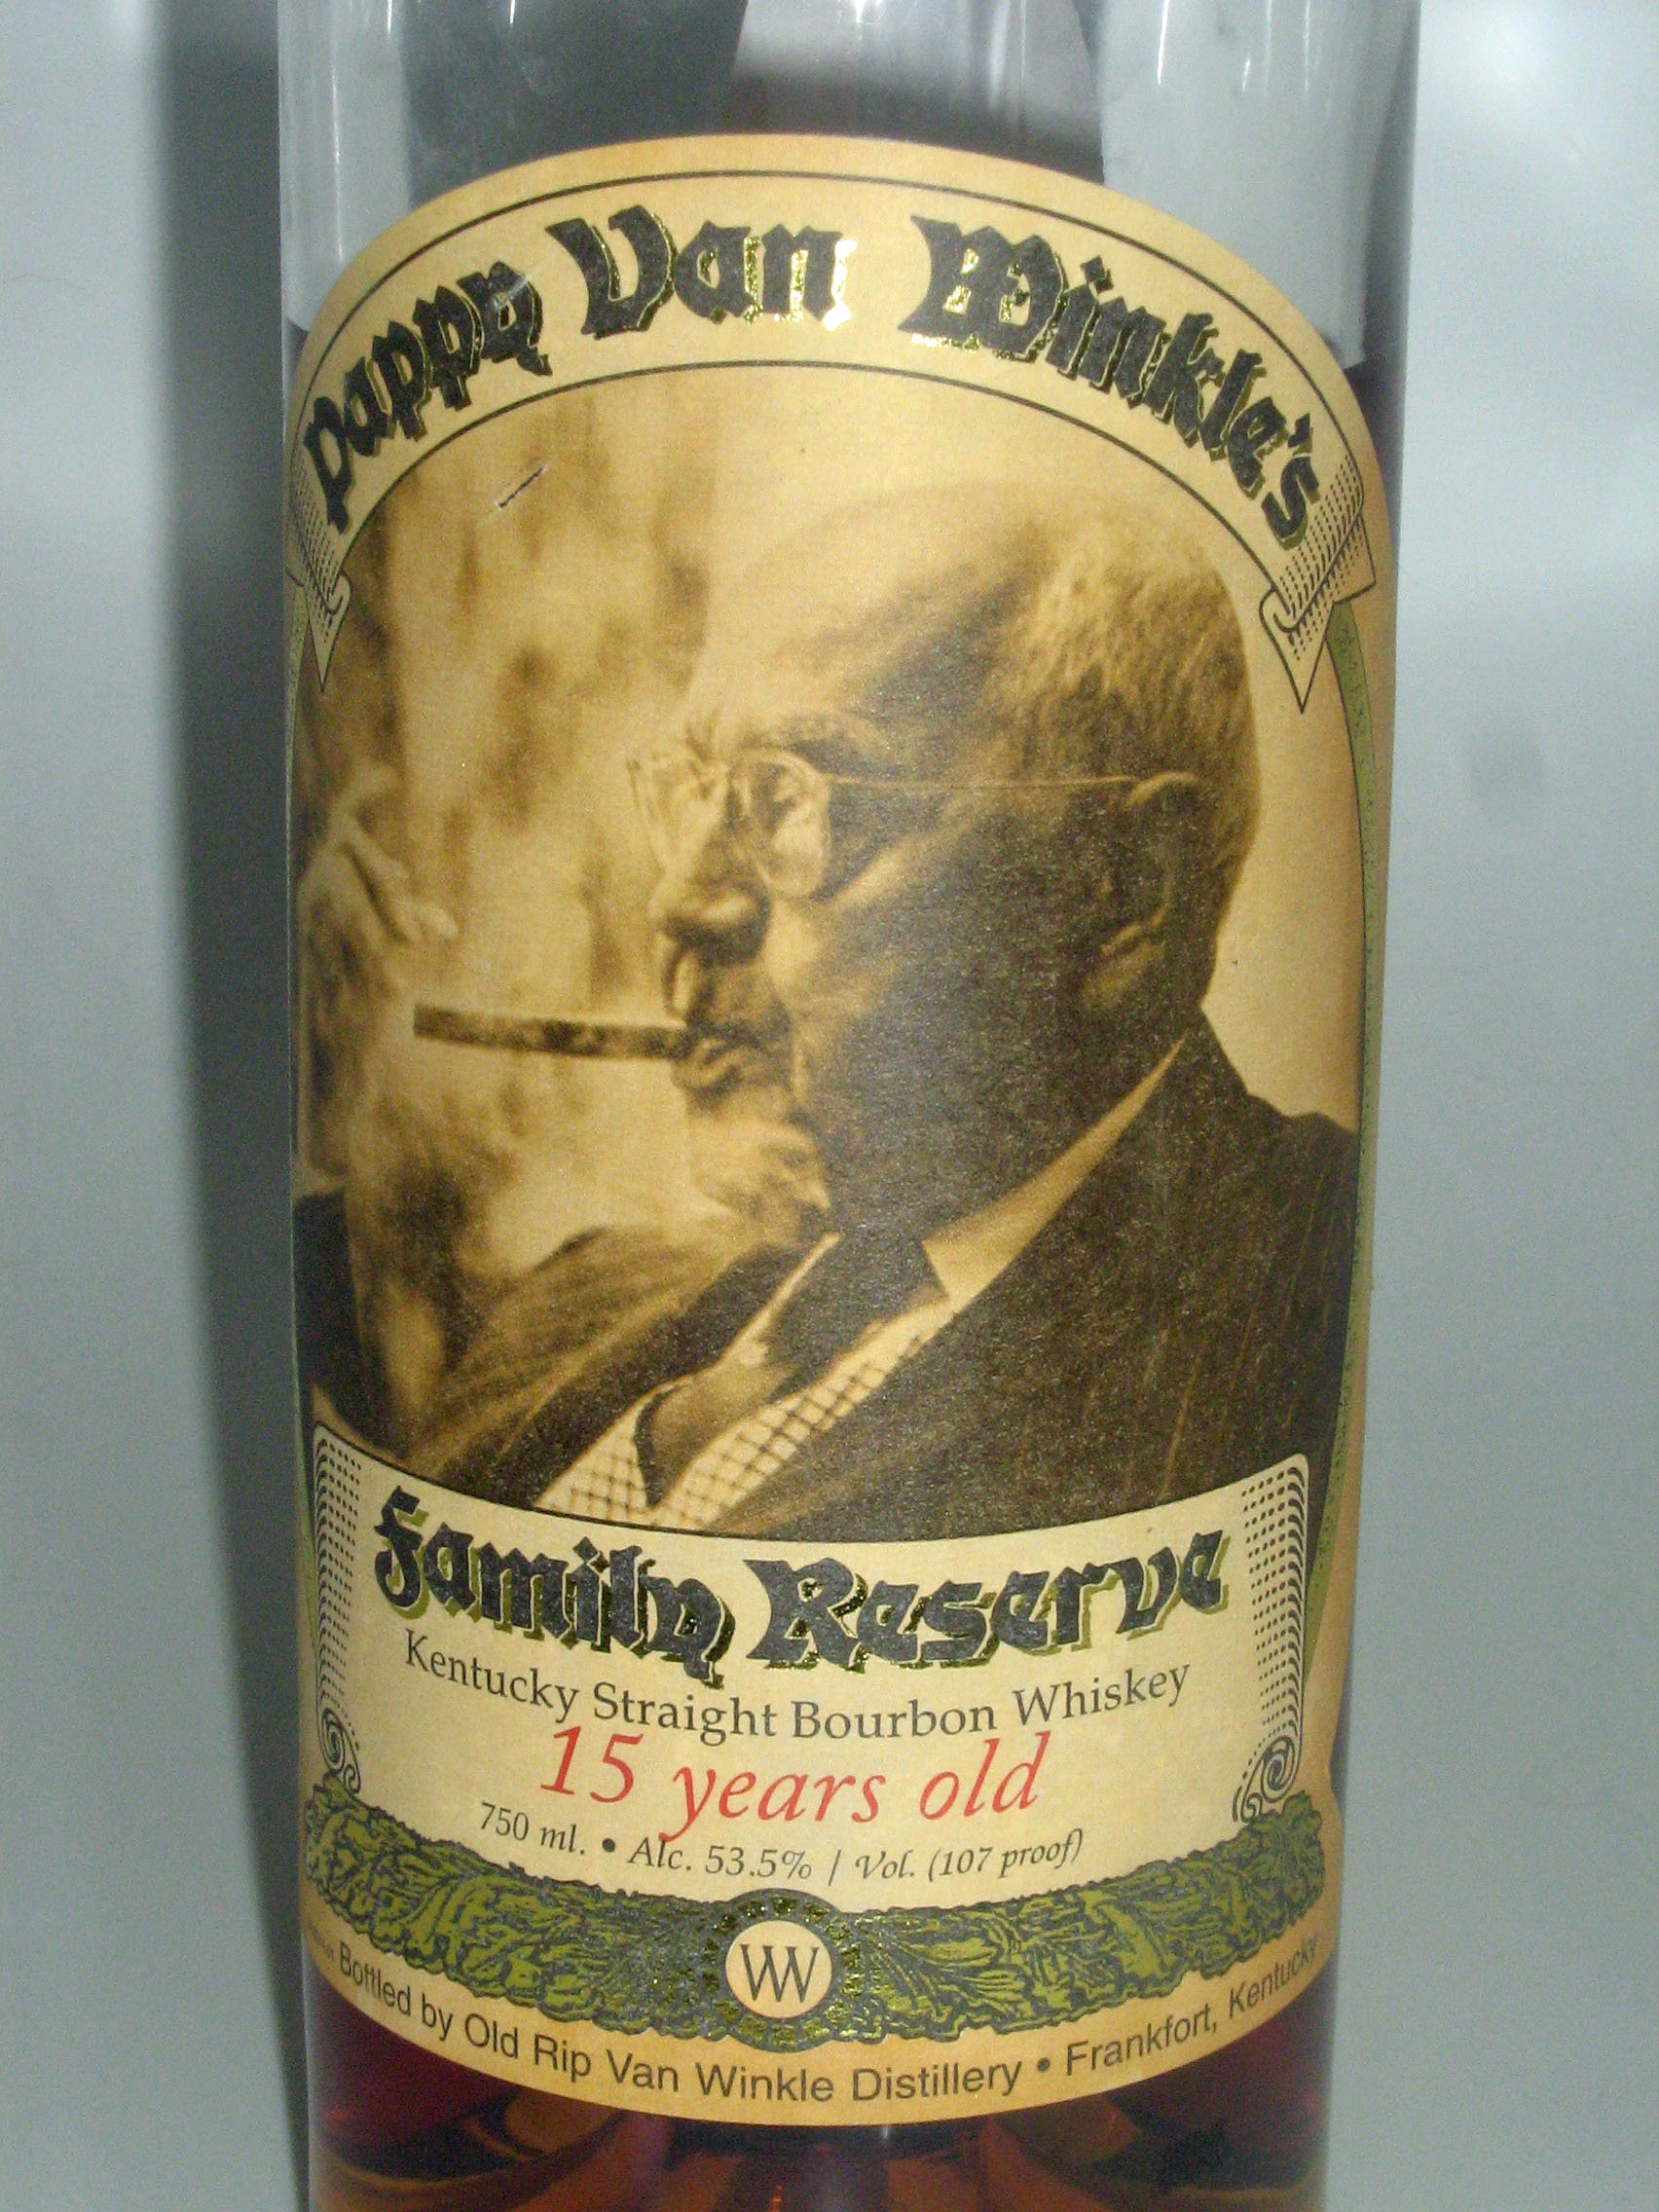 Pappy Van Winkle 15 Year Family Reserve Bourbon Whiskey